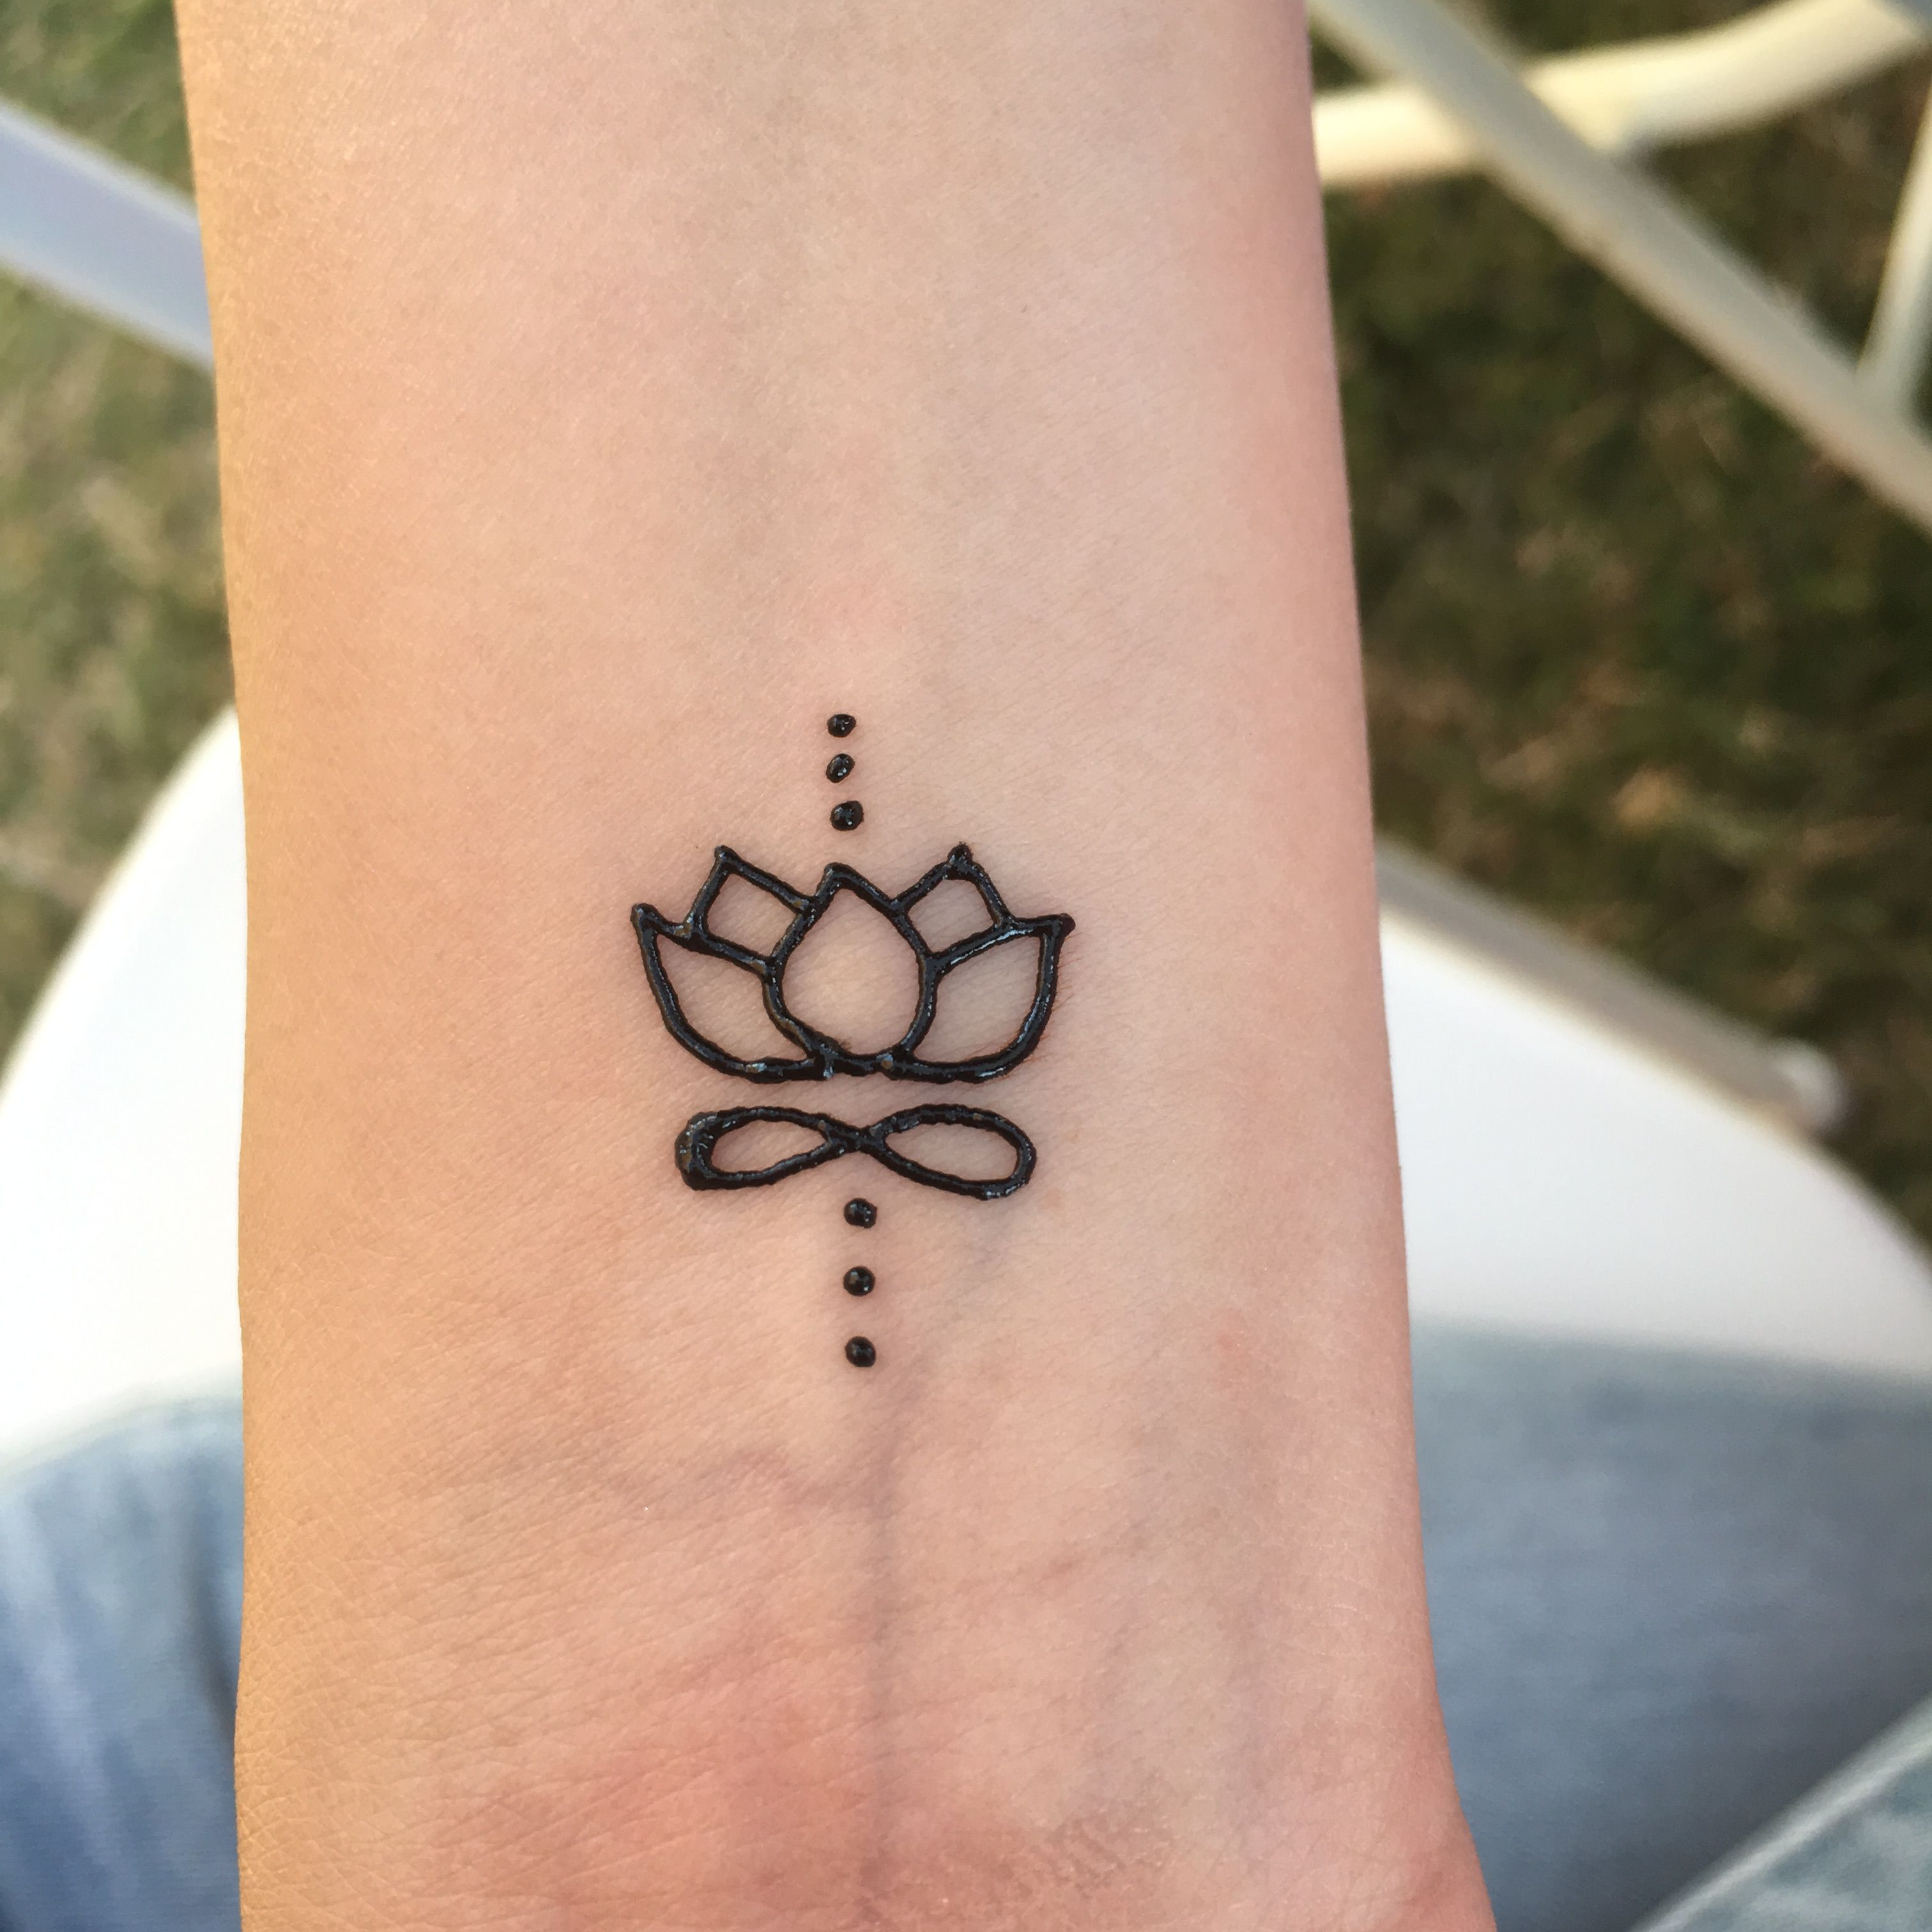 Henna Mehndi Tattoo Designs Idea For Wrist: Small Lotus Henna Tattoo